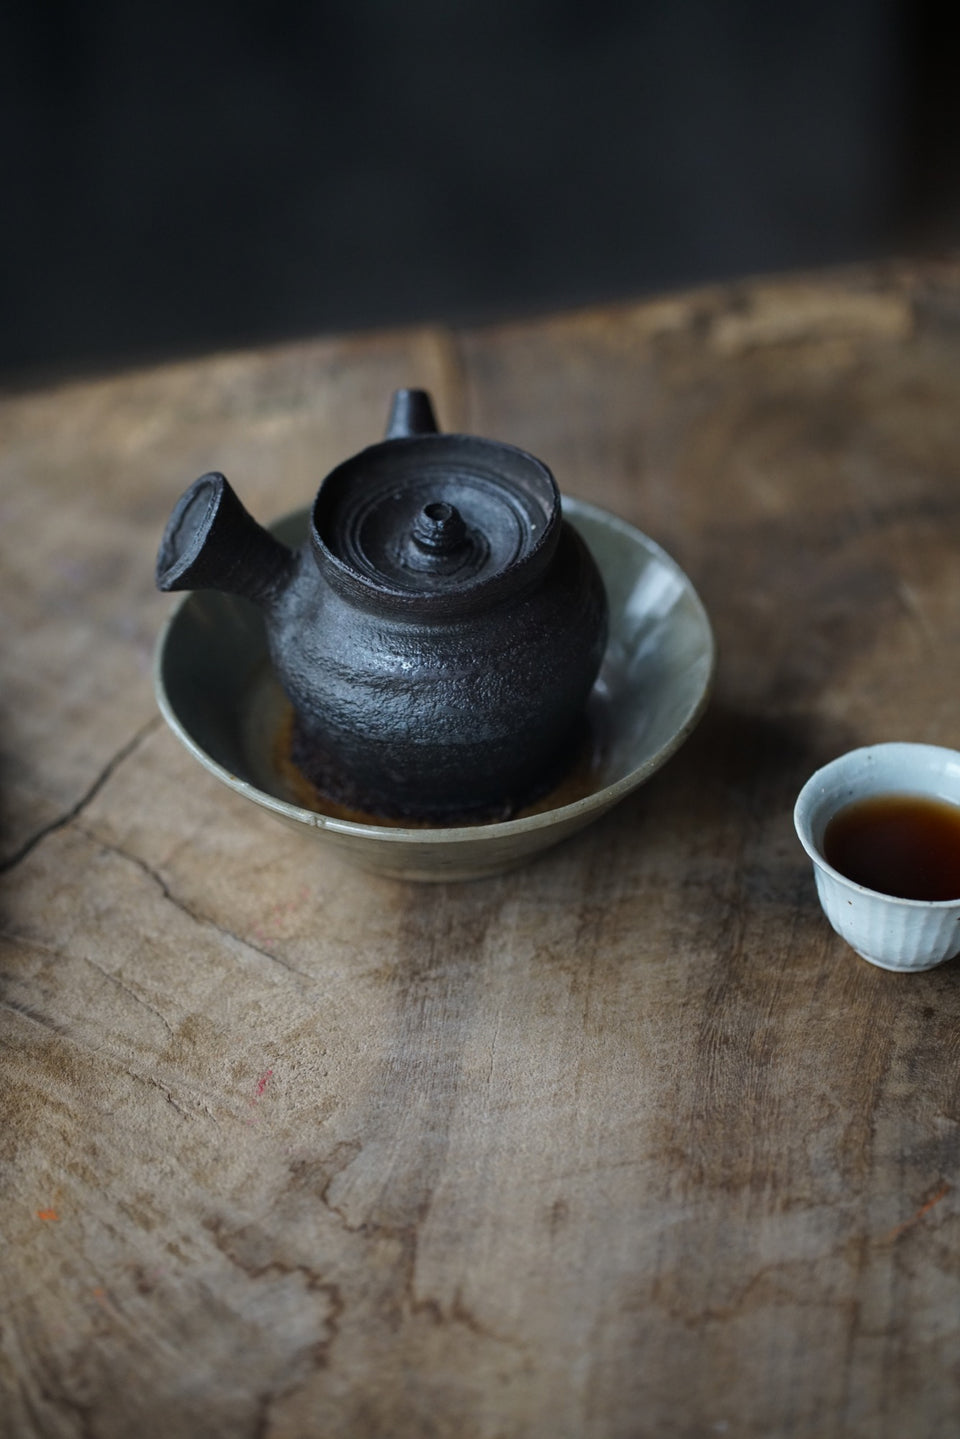 Wabi-Sabi Side-Handle Yixing Teapot (Chen Wei)